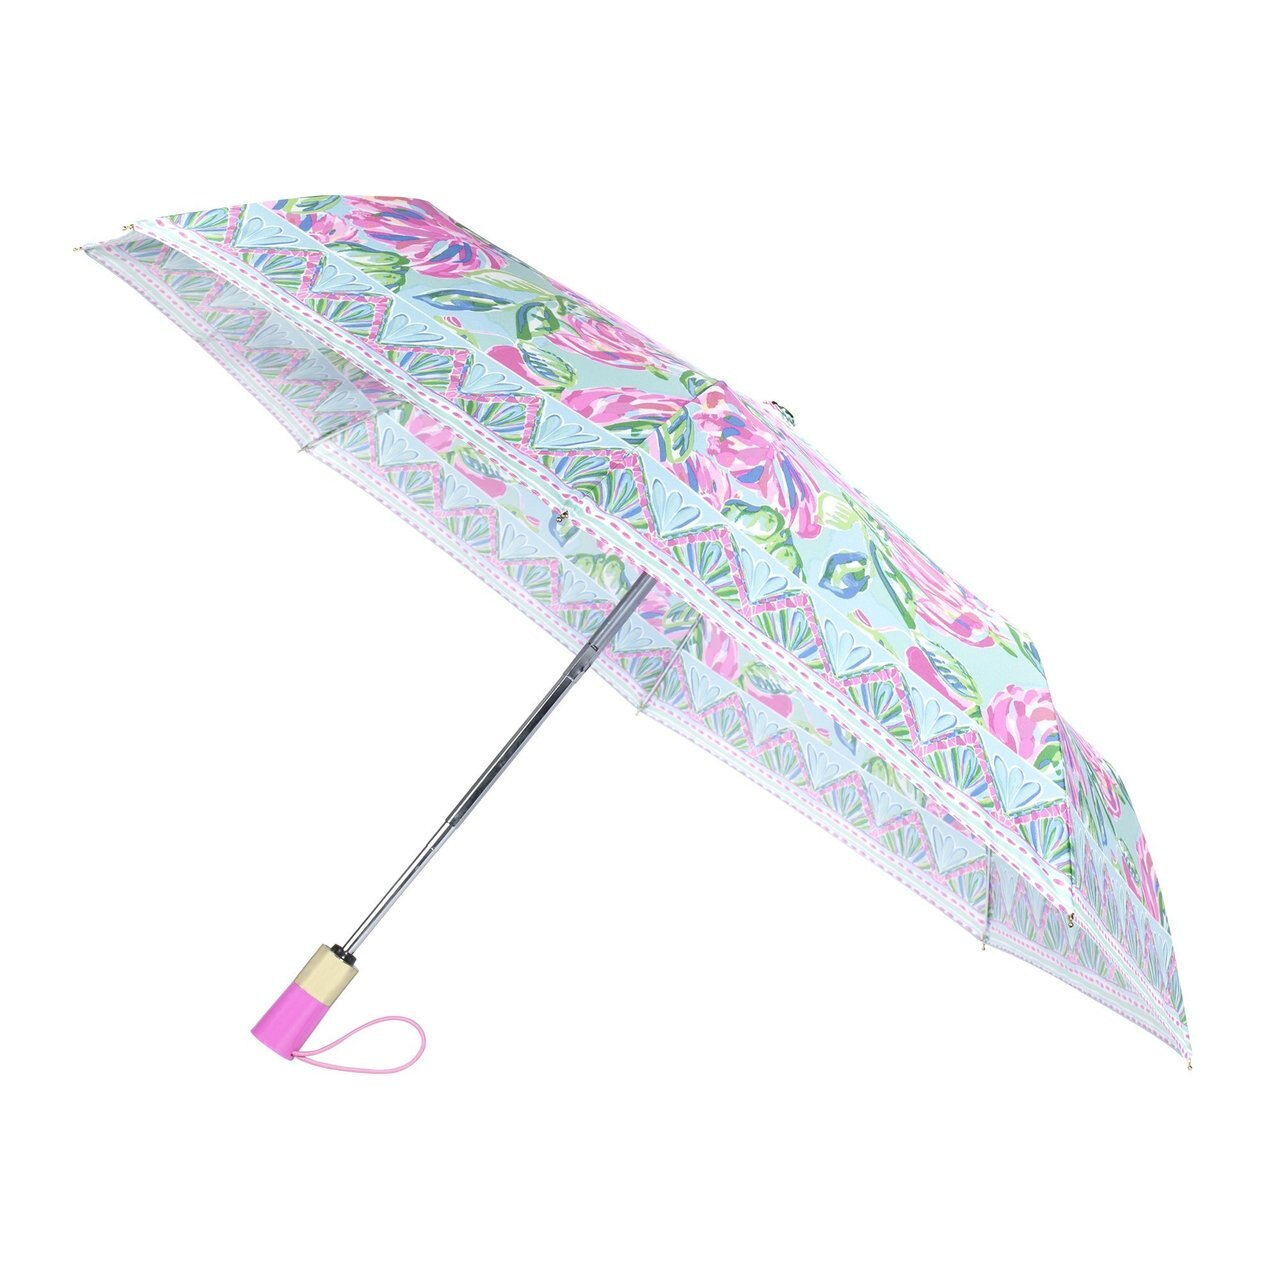 Totally Blossom Travel Umbrella